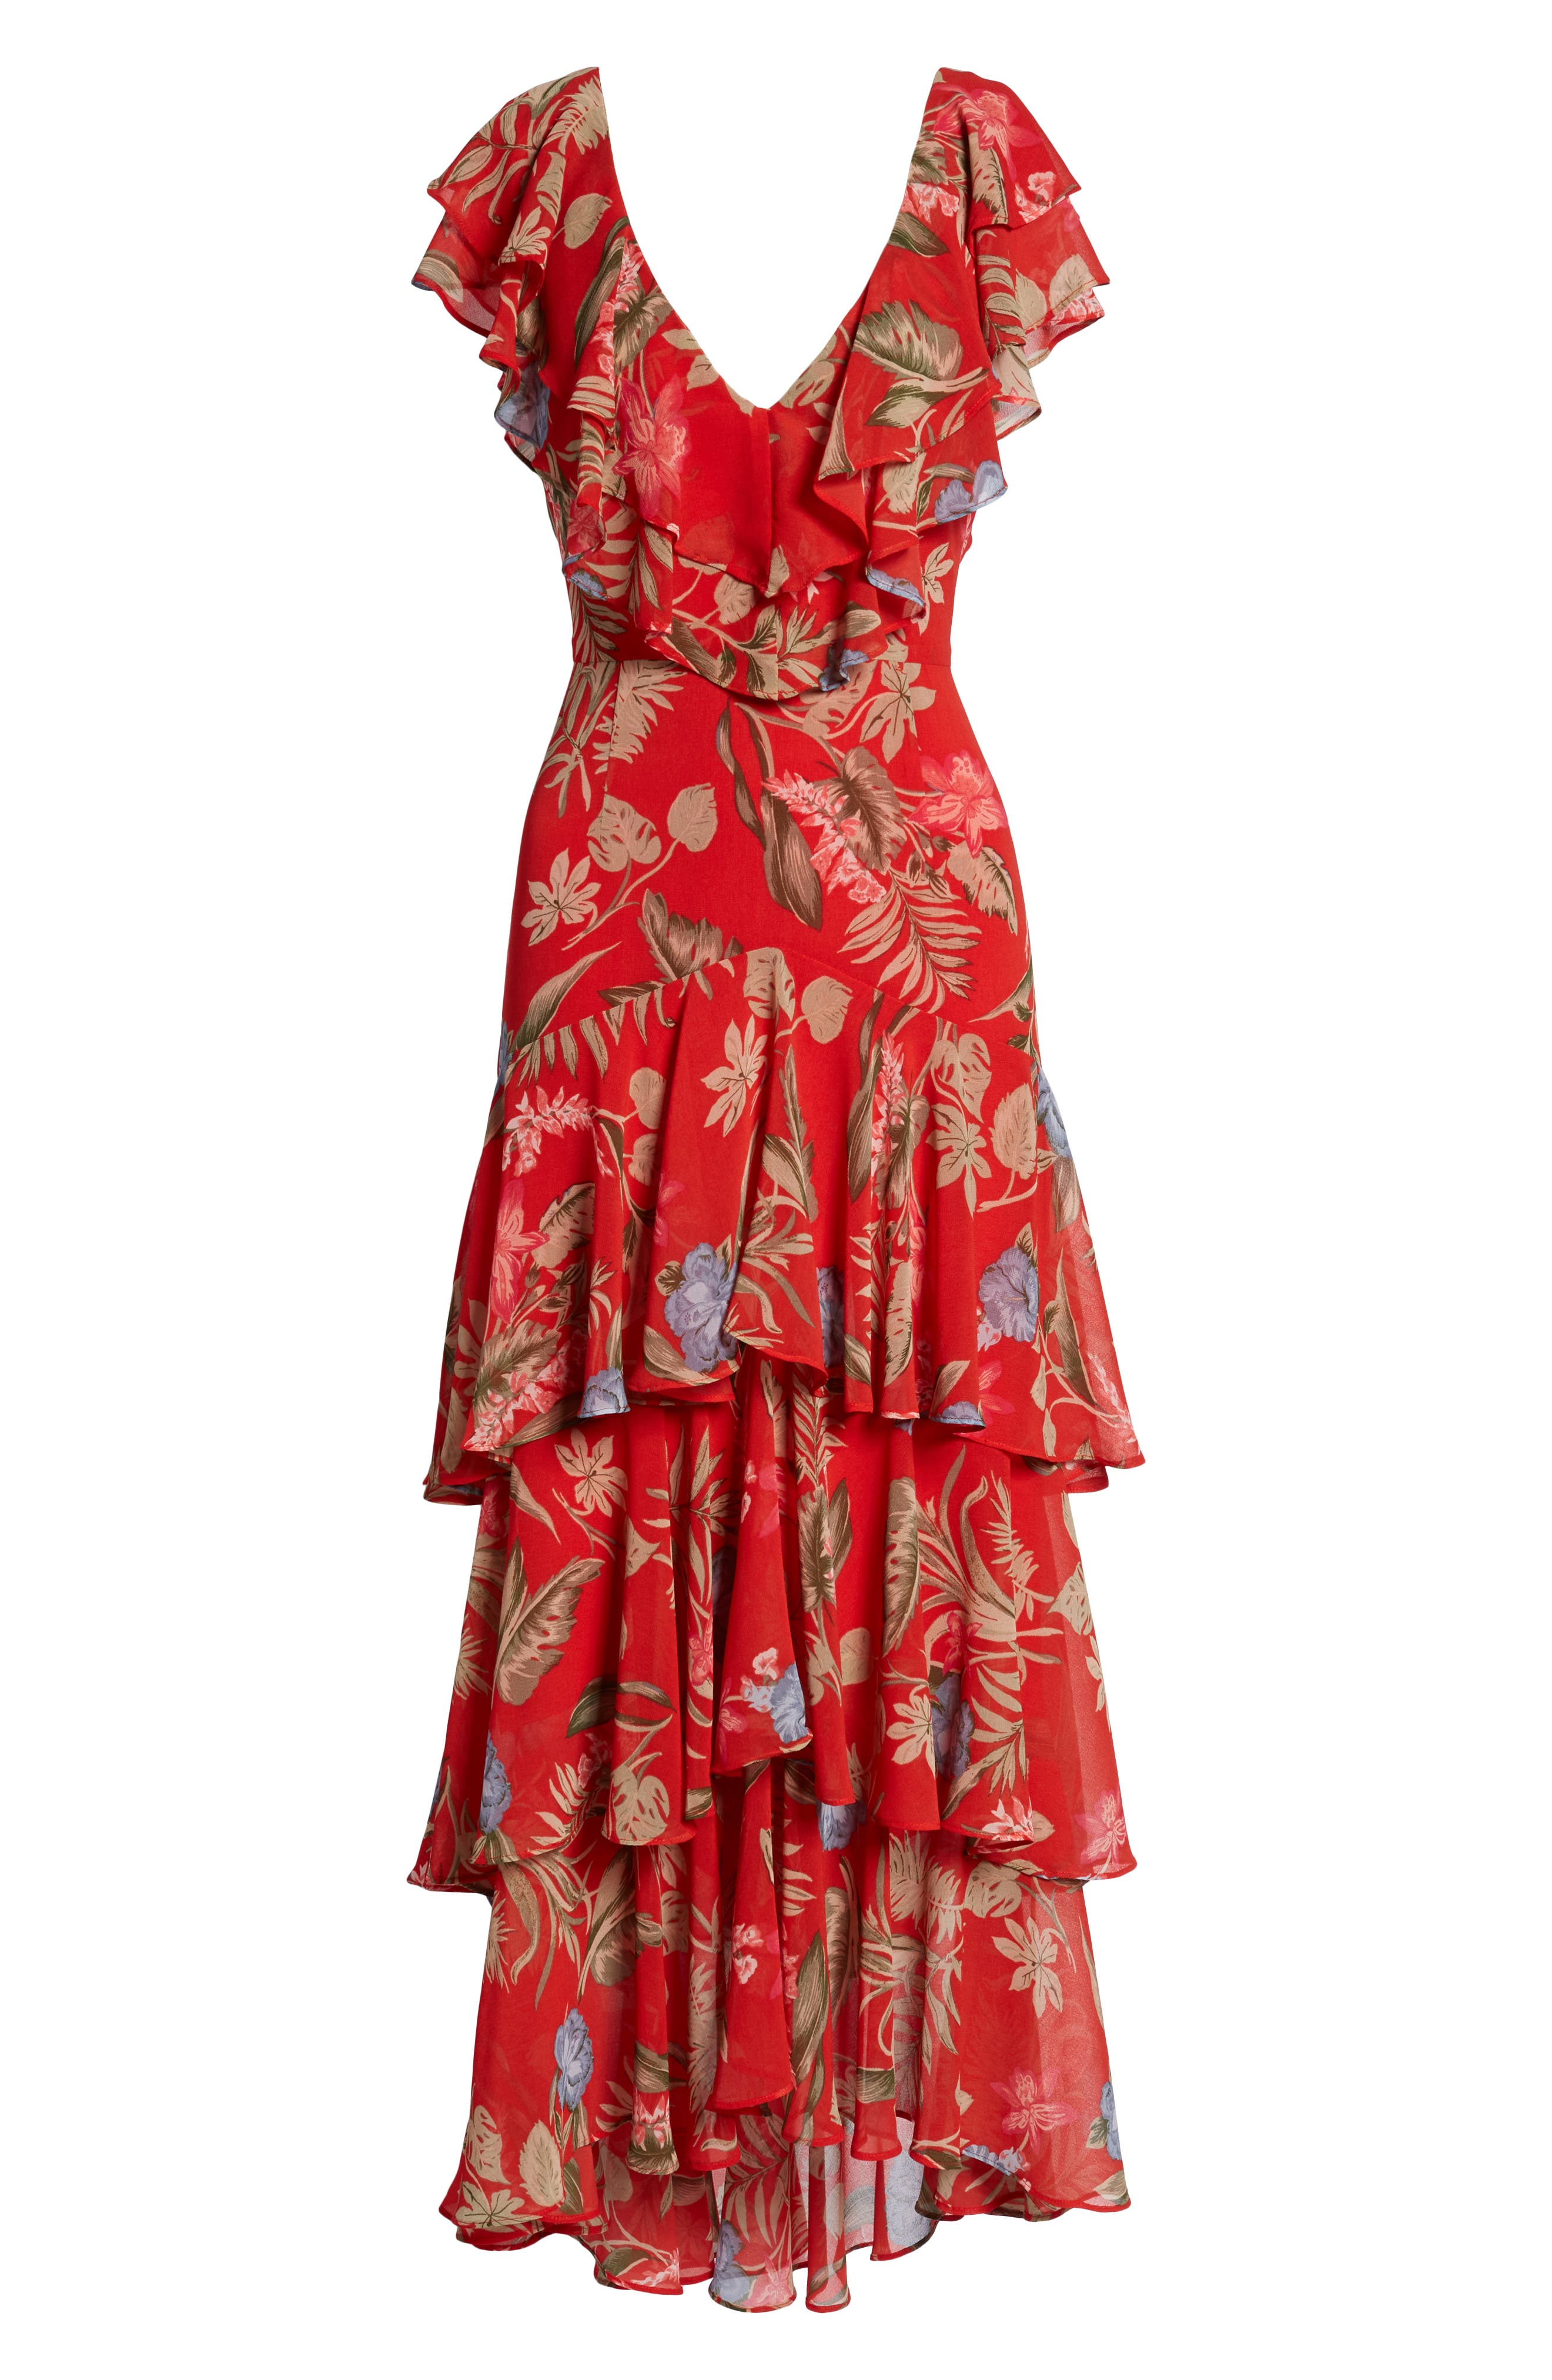 Chelsea Tiered Ruffle Maxi Dress,                             Alternate thumbnail 7, color,                             600